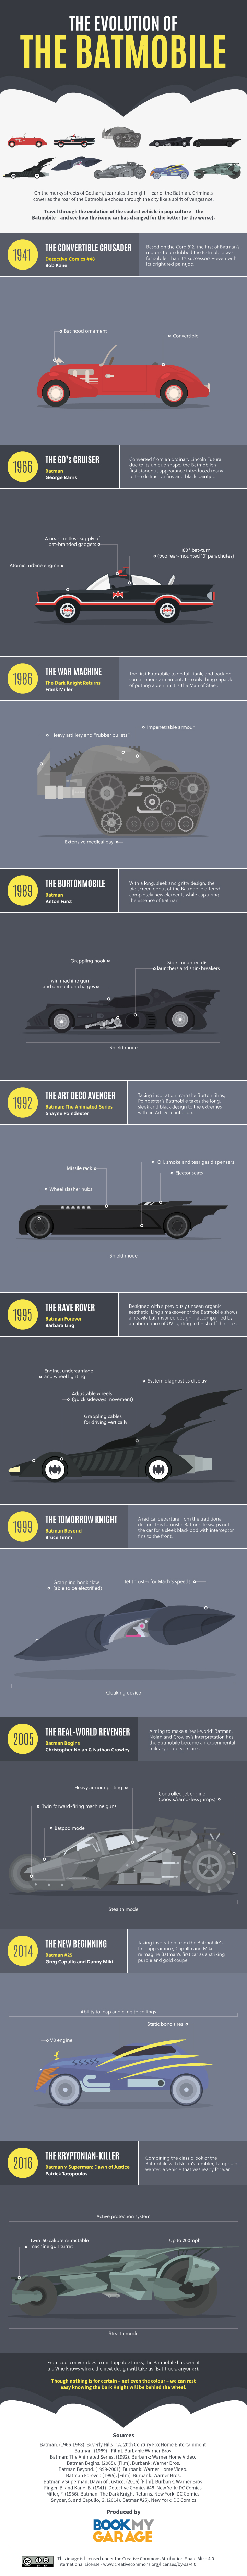 The Evolution of the Batmobile by BookMyGarage.com